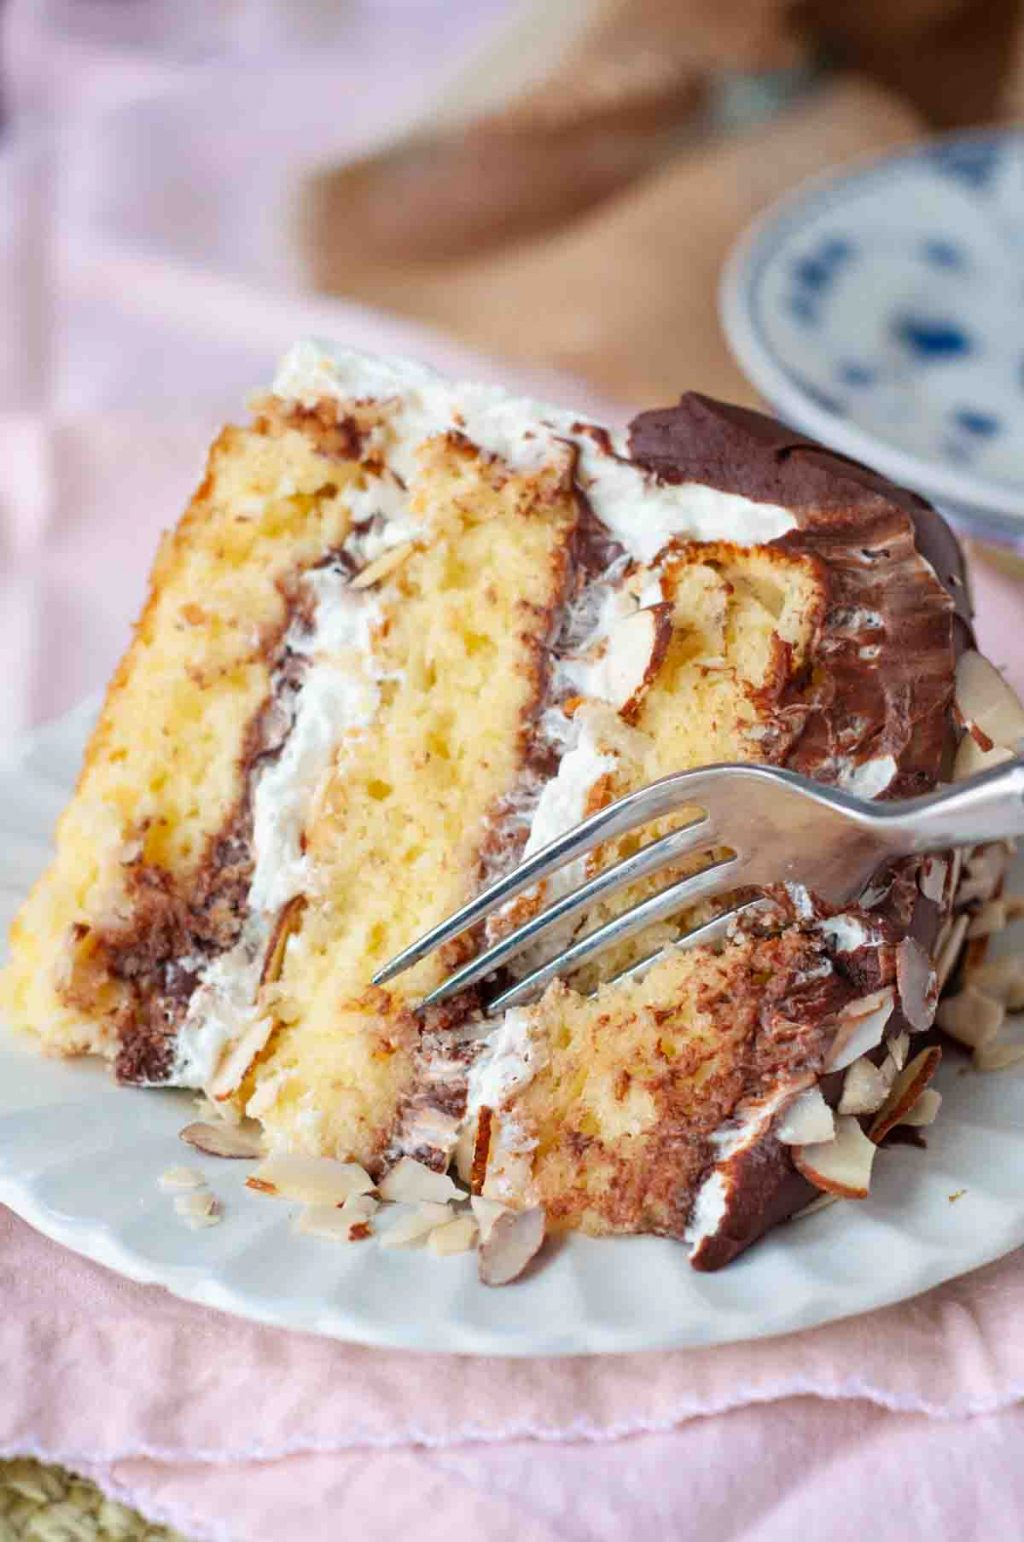 A slice of cake with a fork diving in